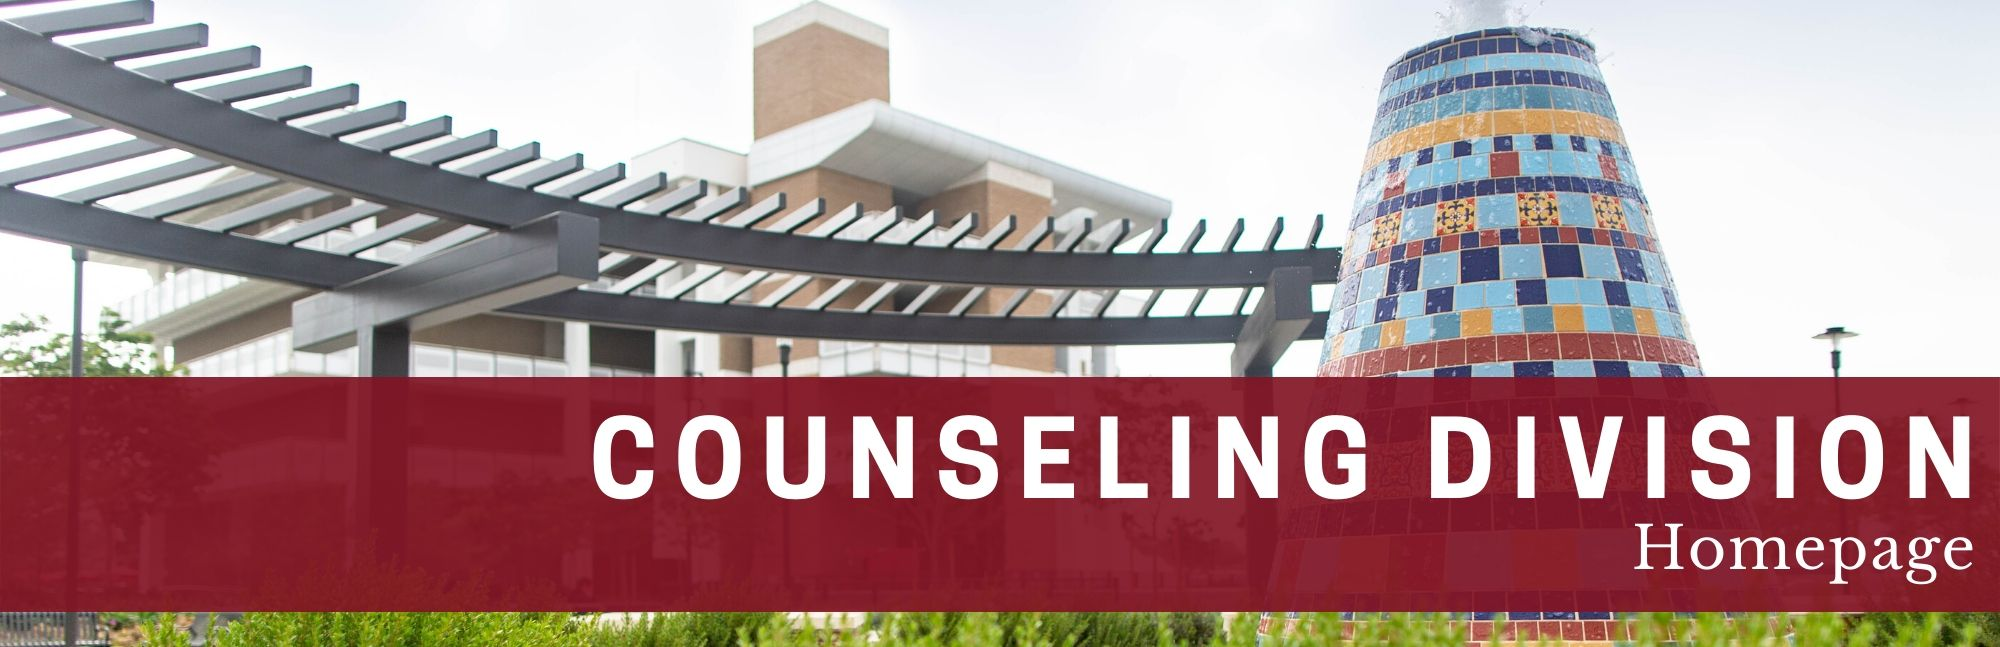 Counseling Department Home Page